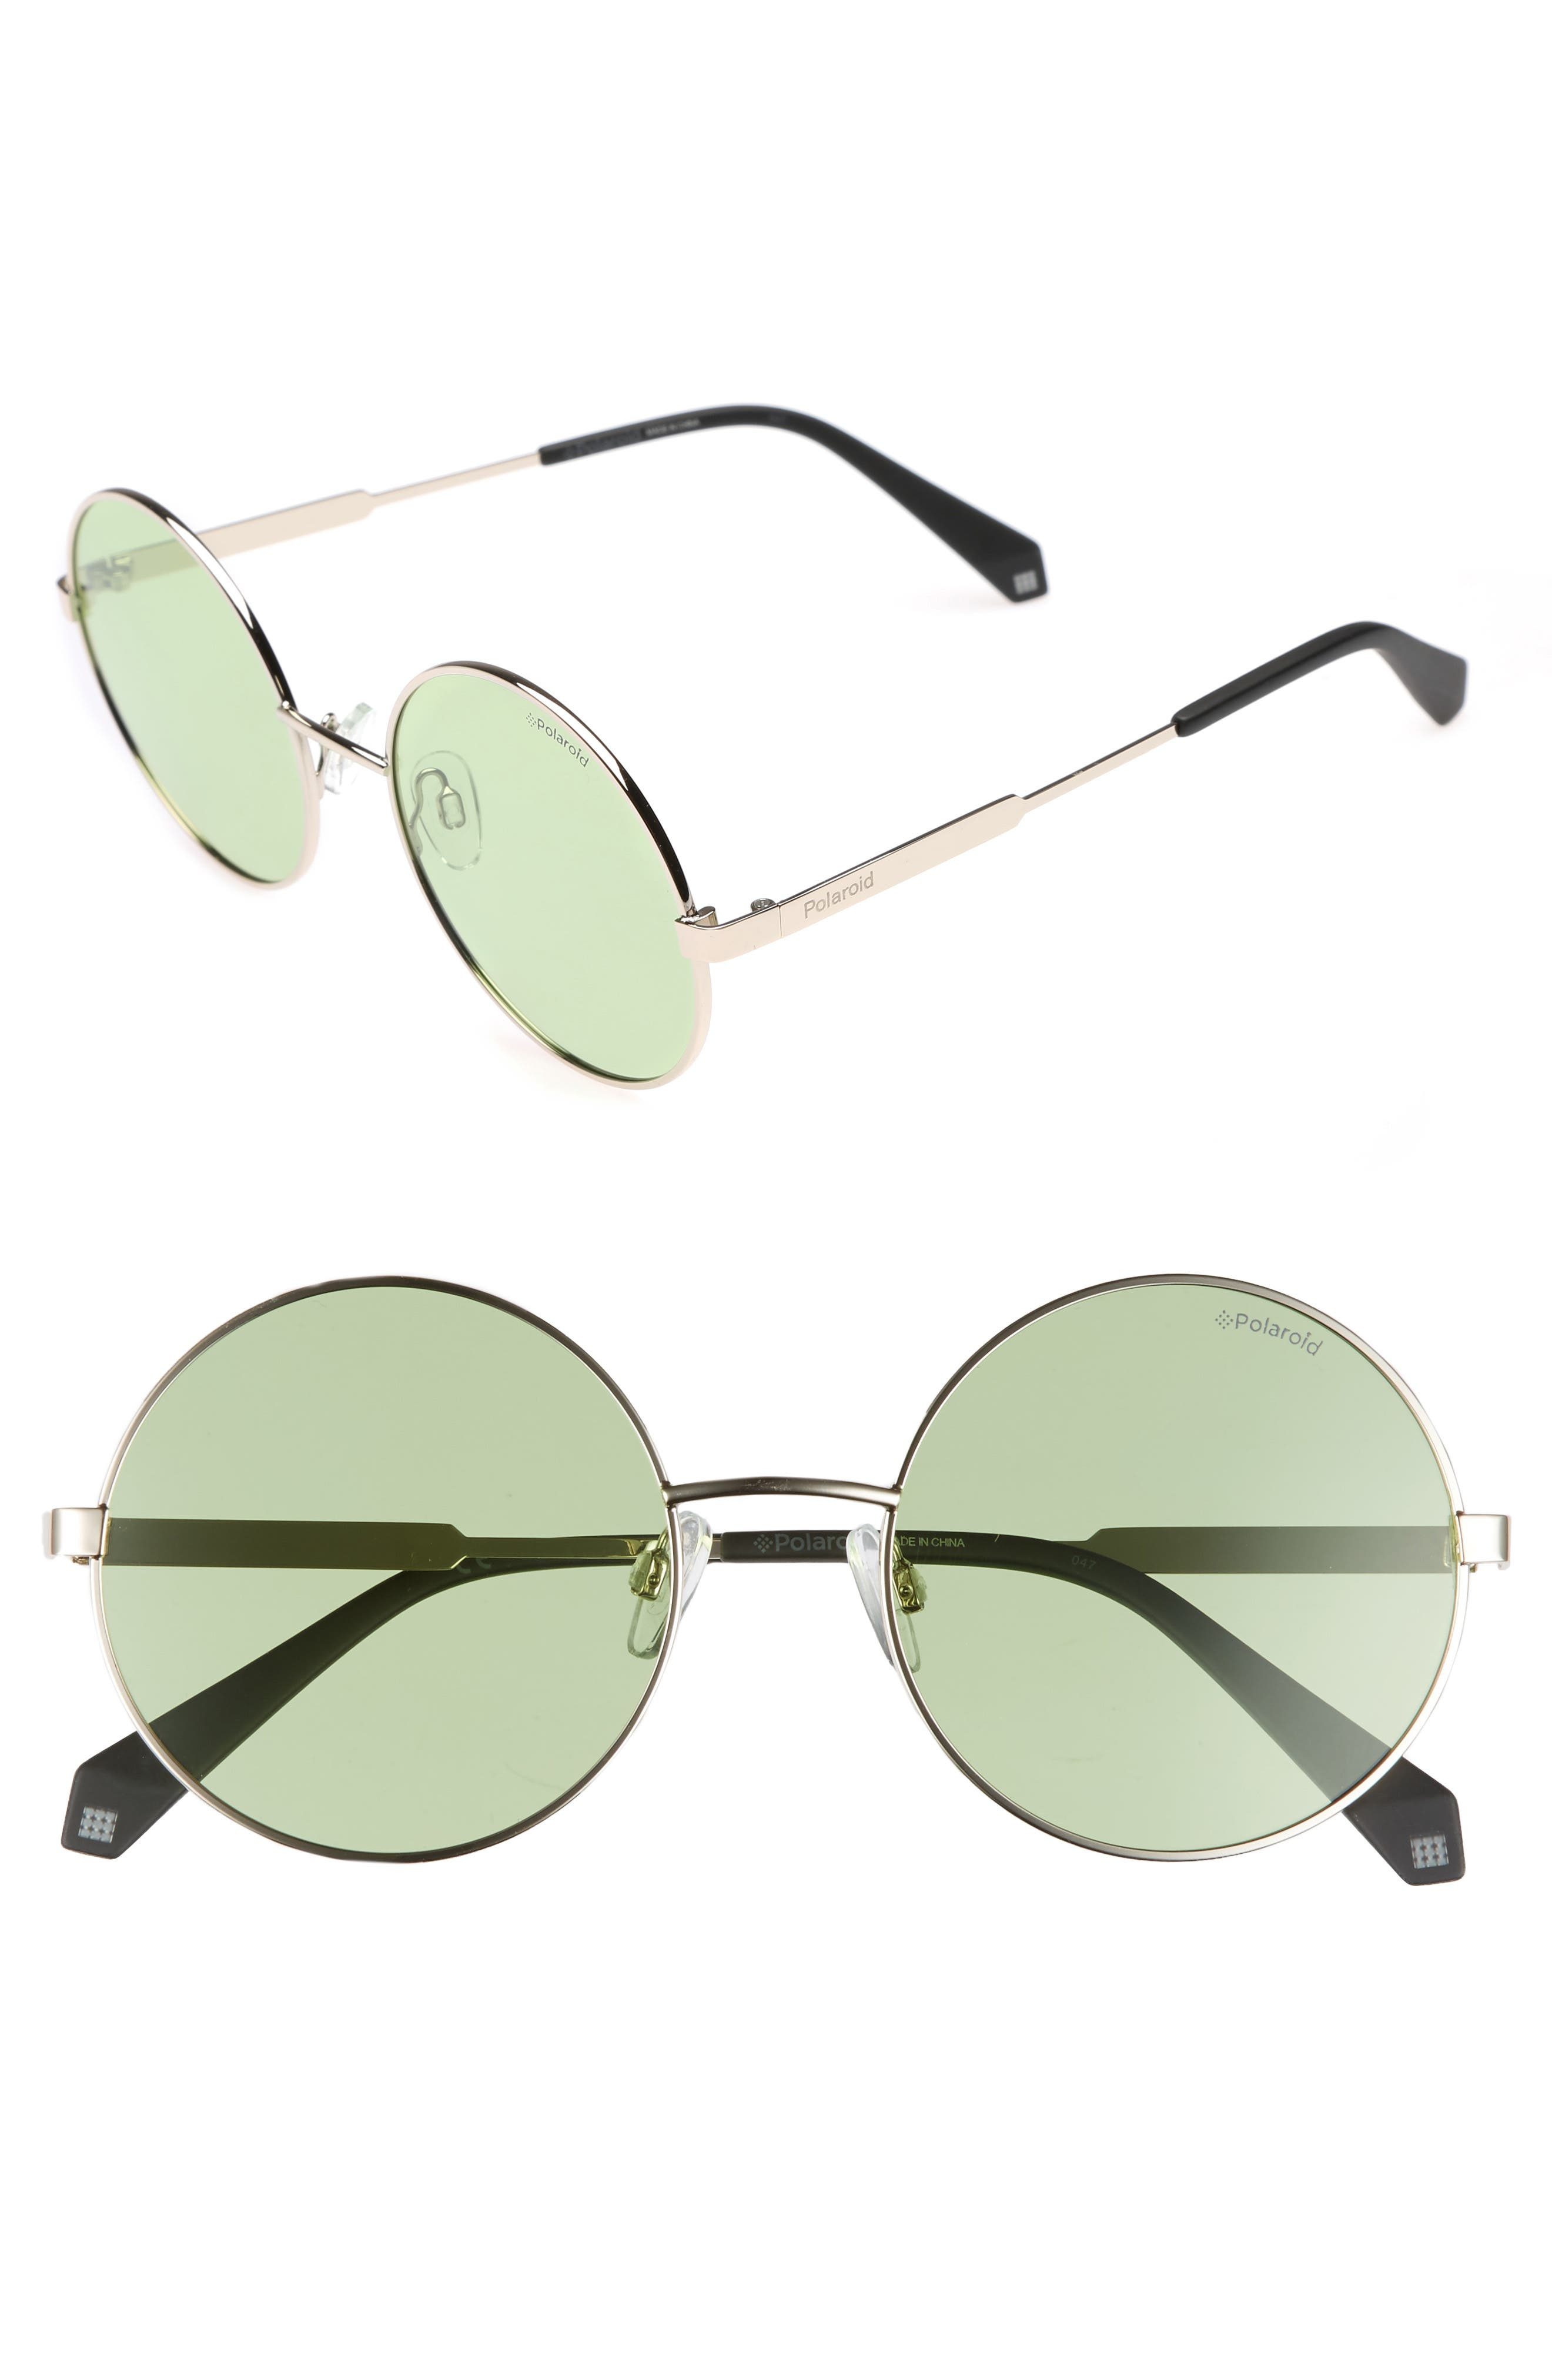 55mm Polarized Round Sunglasses,                         Main,                         color, 300